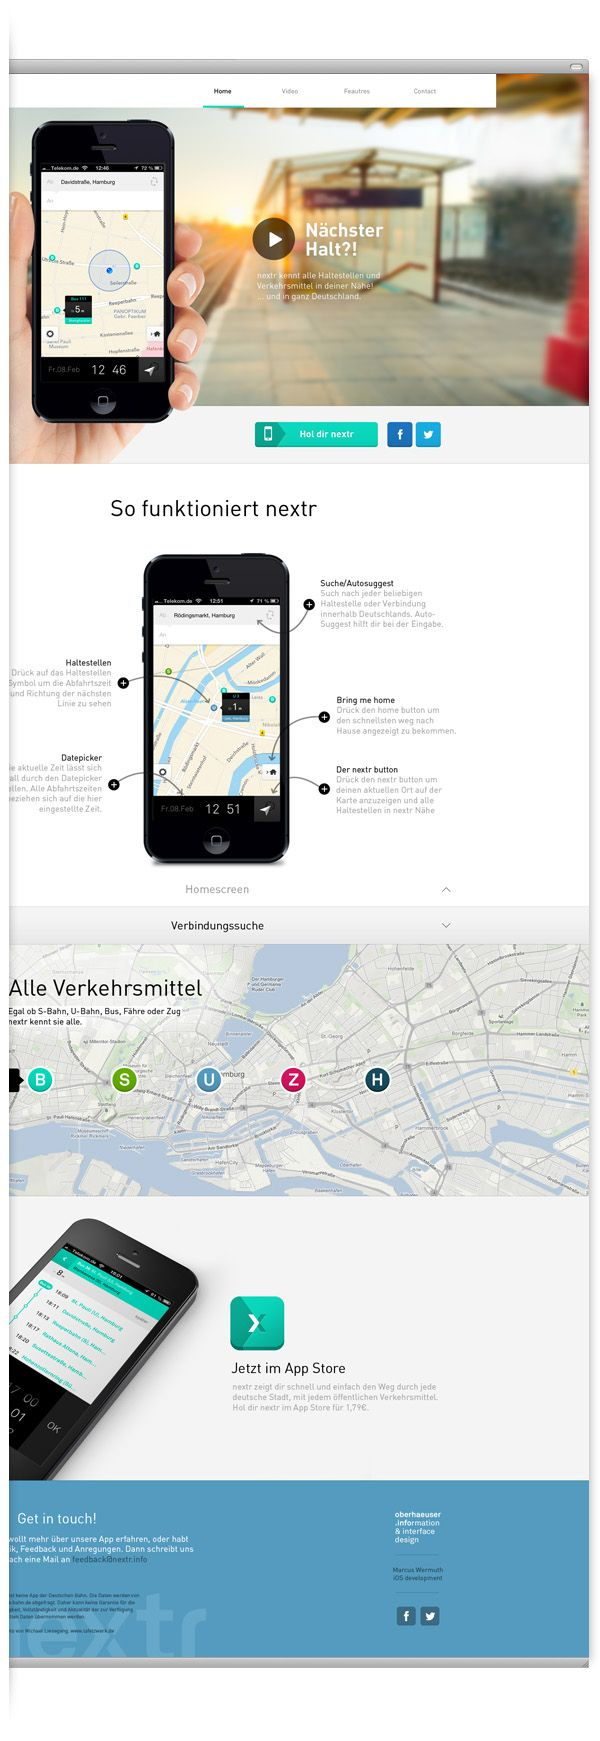 Nextr is an iPhone app that guides you through all public